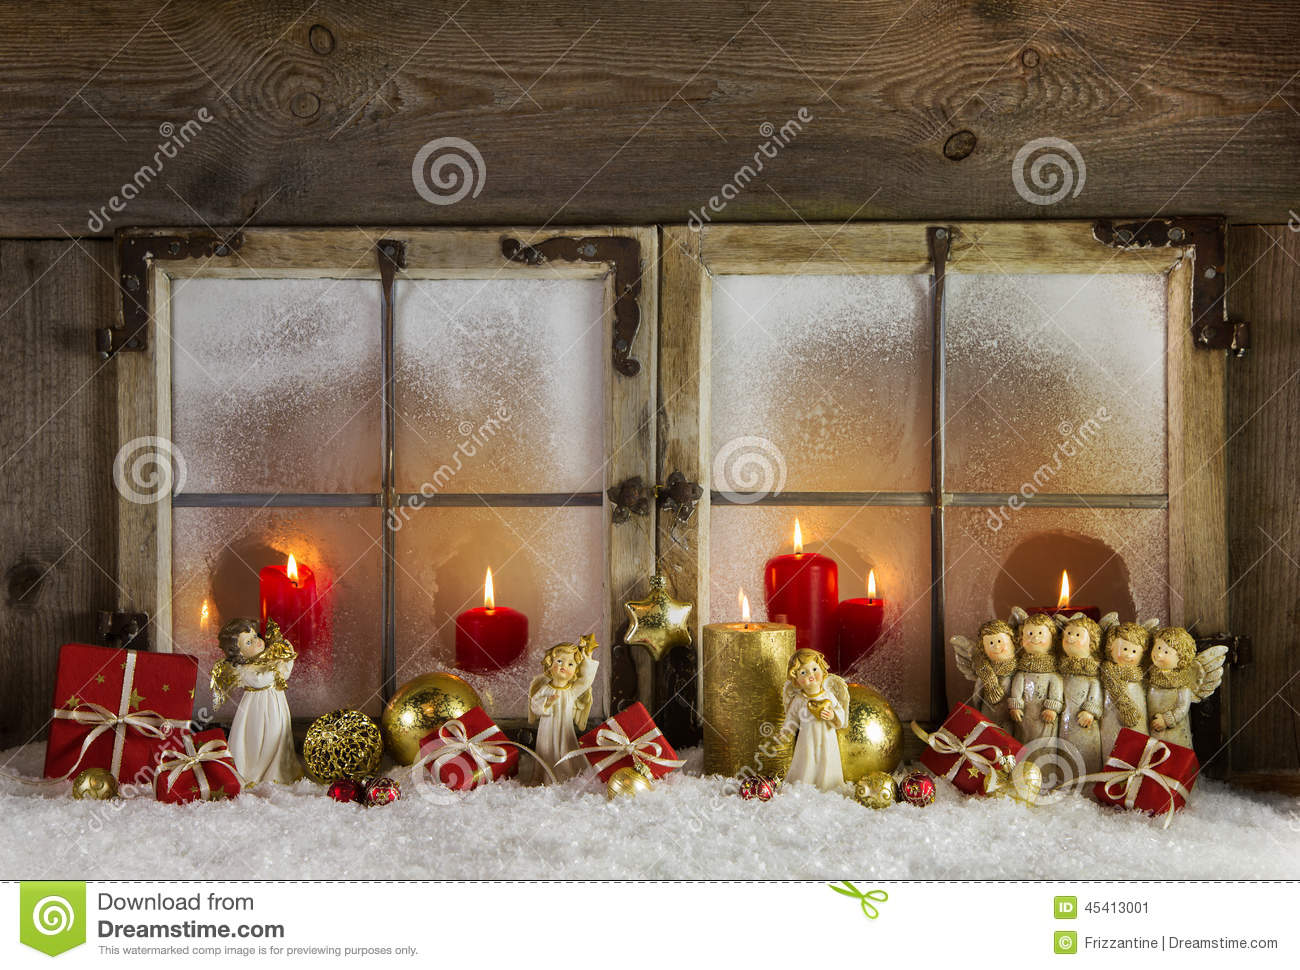 download classical christmas wooden window decoration with red candles an stock image image of light - Classical Christmas